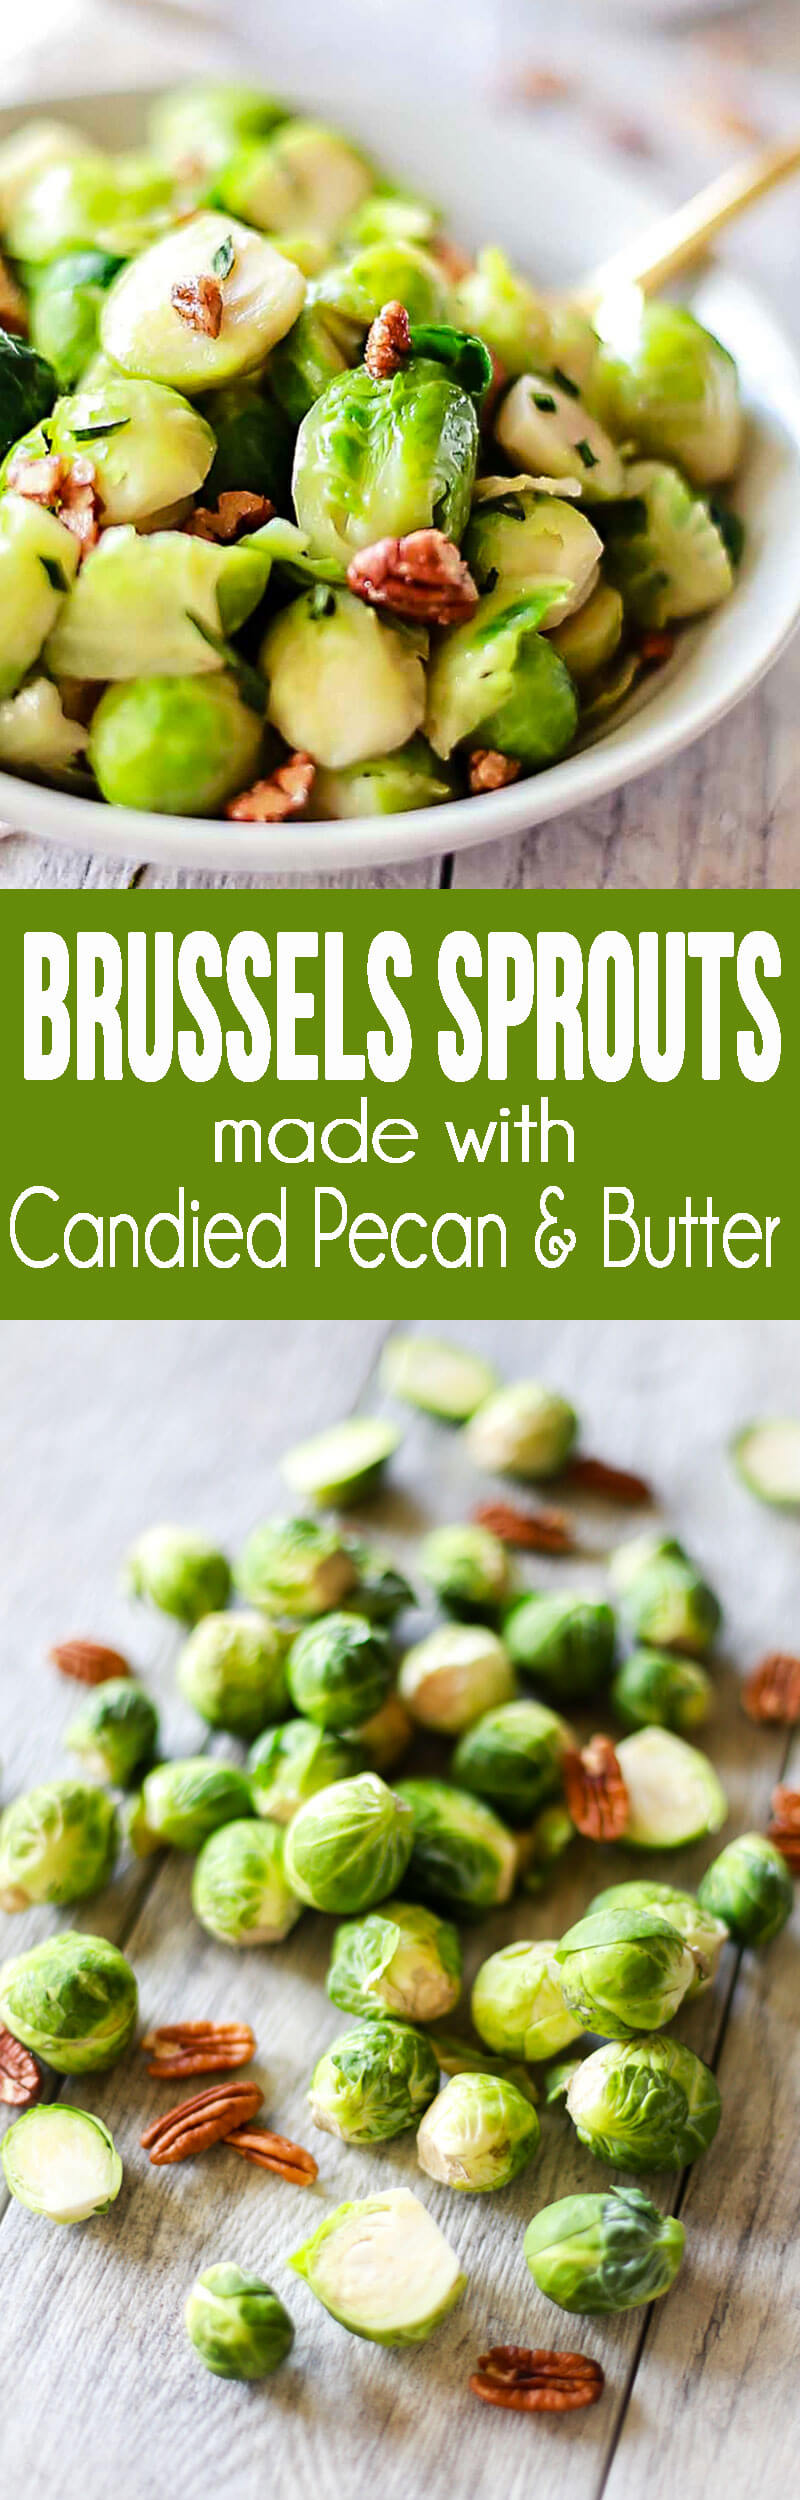 Brussels Sprouts made with Candied Pecan & Butter